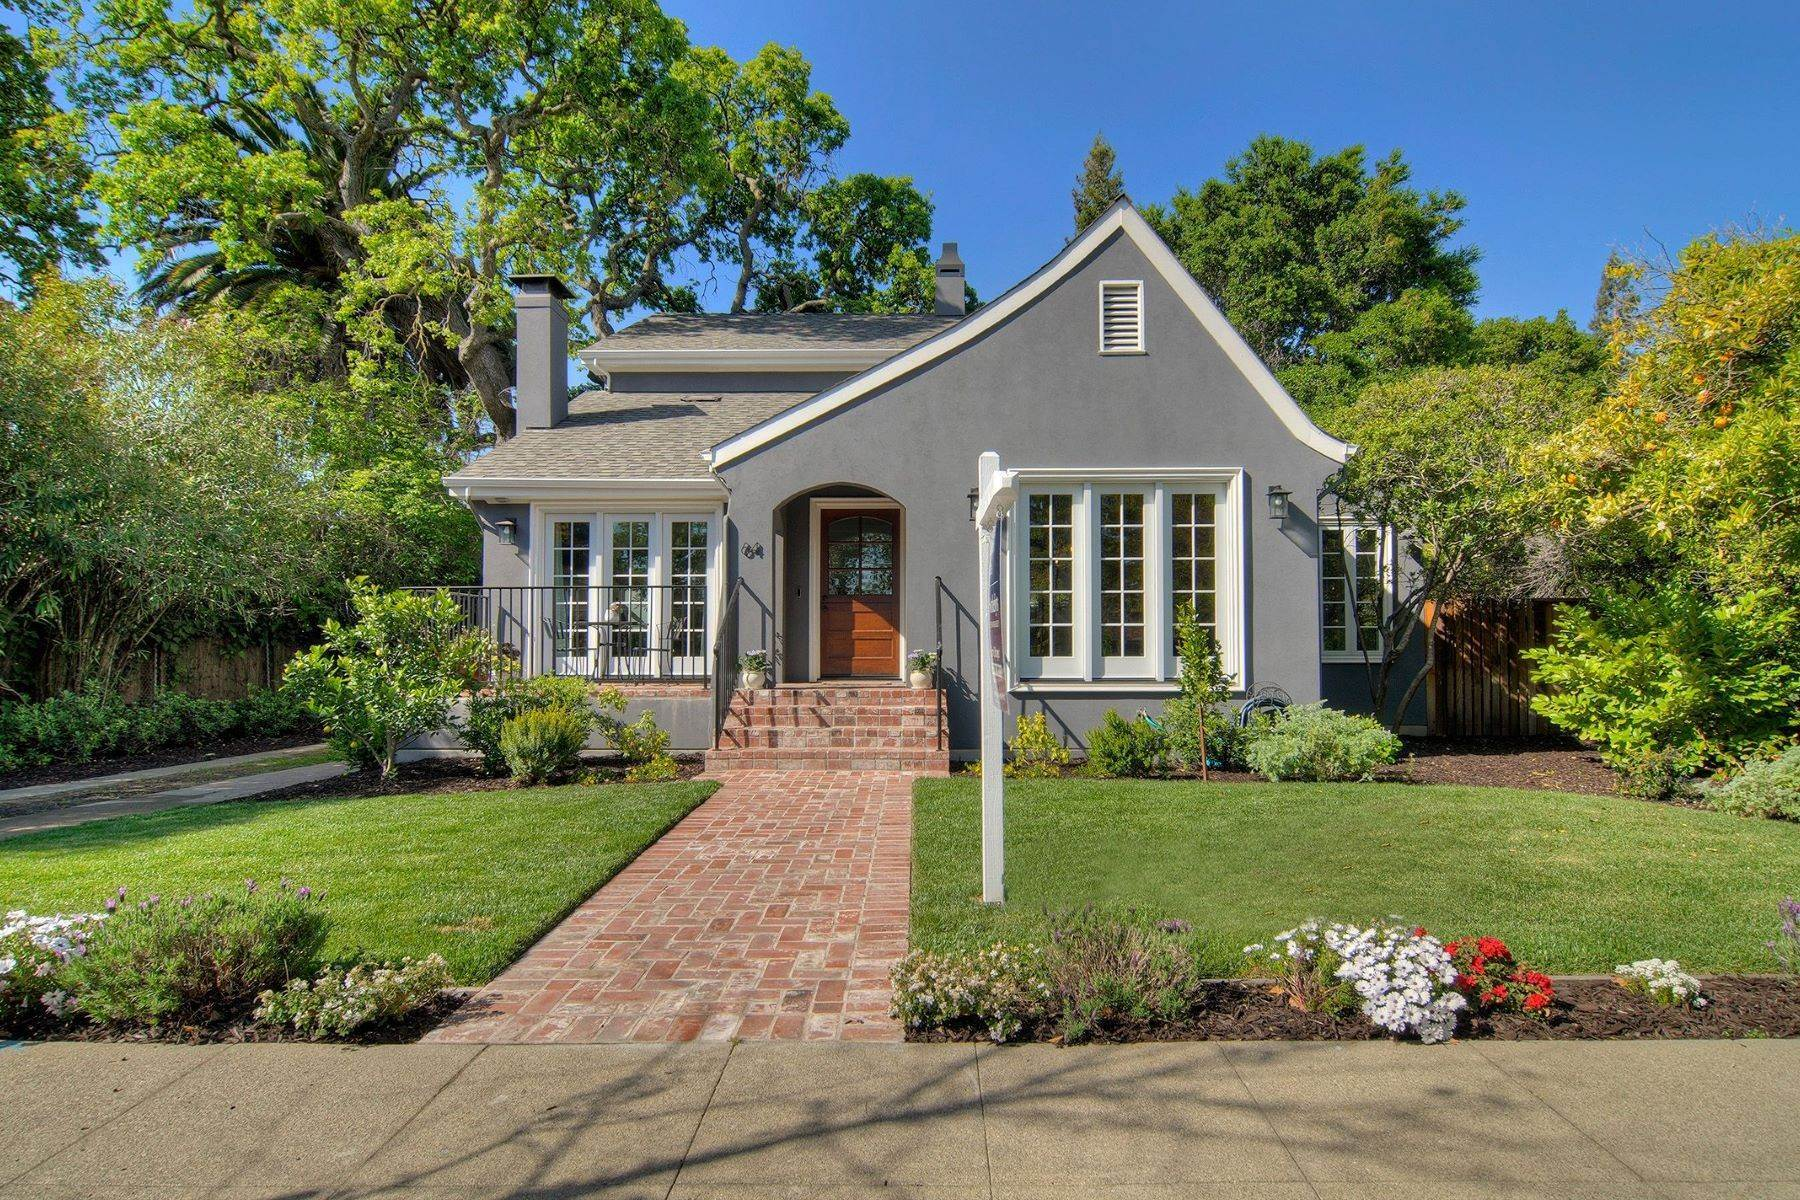 Single Family Homes for Sale at Authentic Charm and Elegance with Modern Upgrades 64 Grand Street Redwood City, California 94062 United States